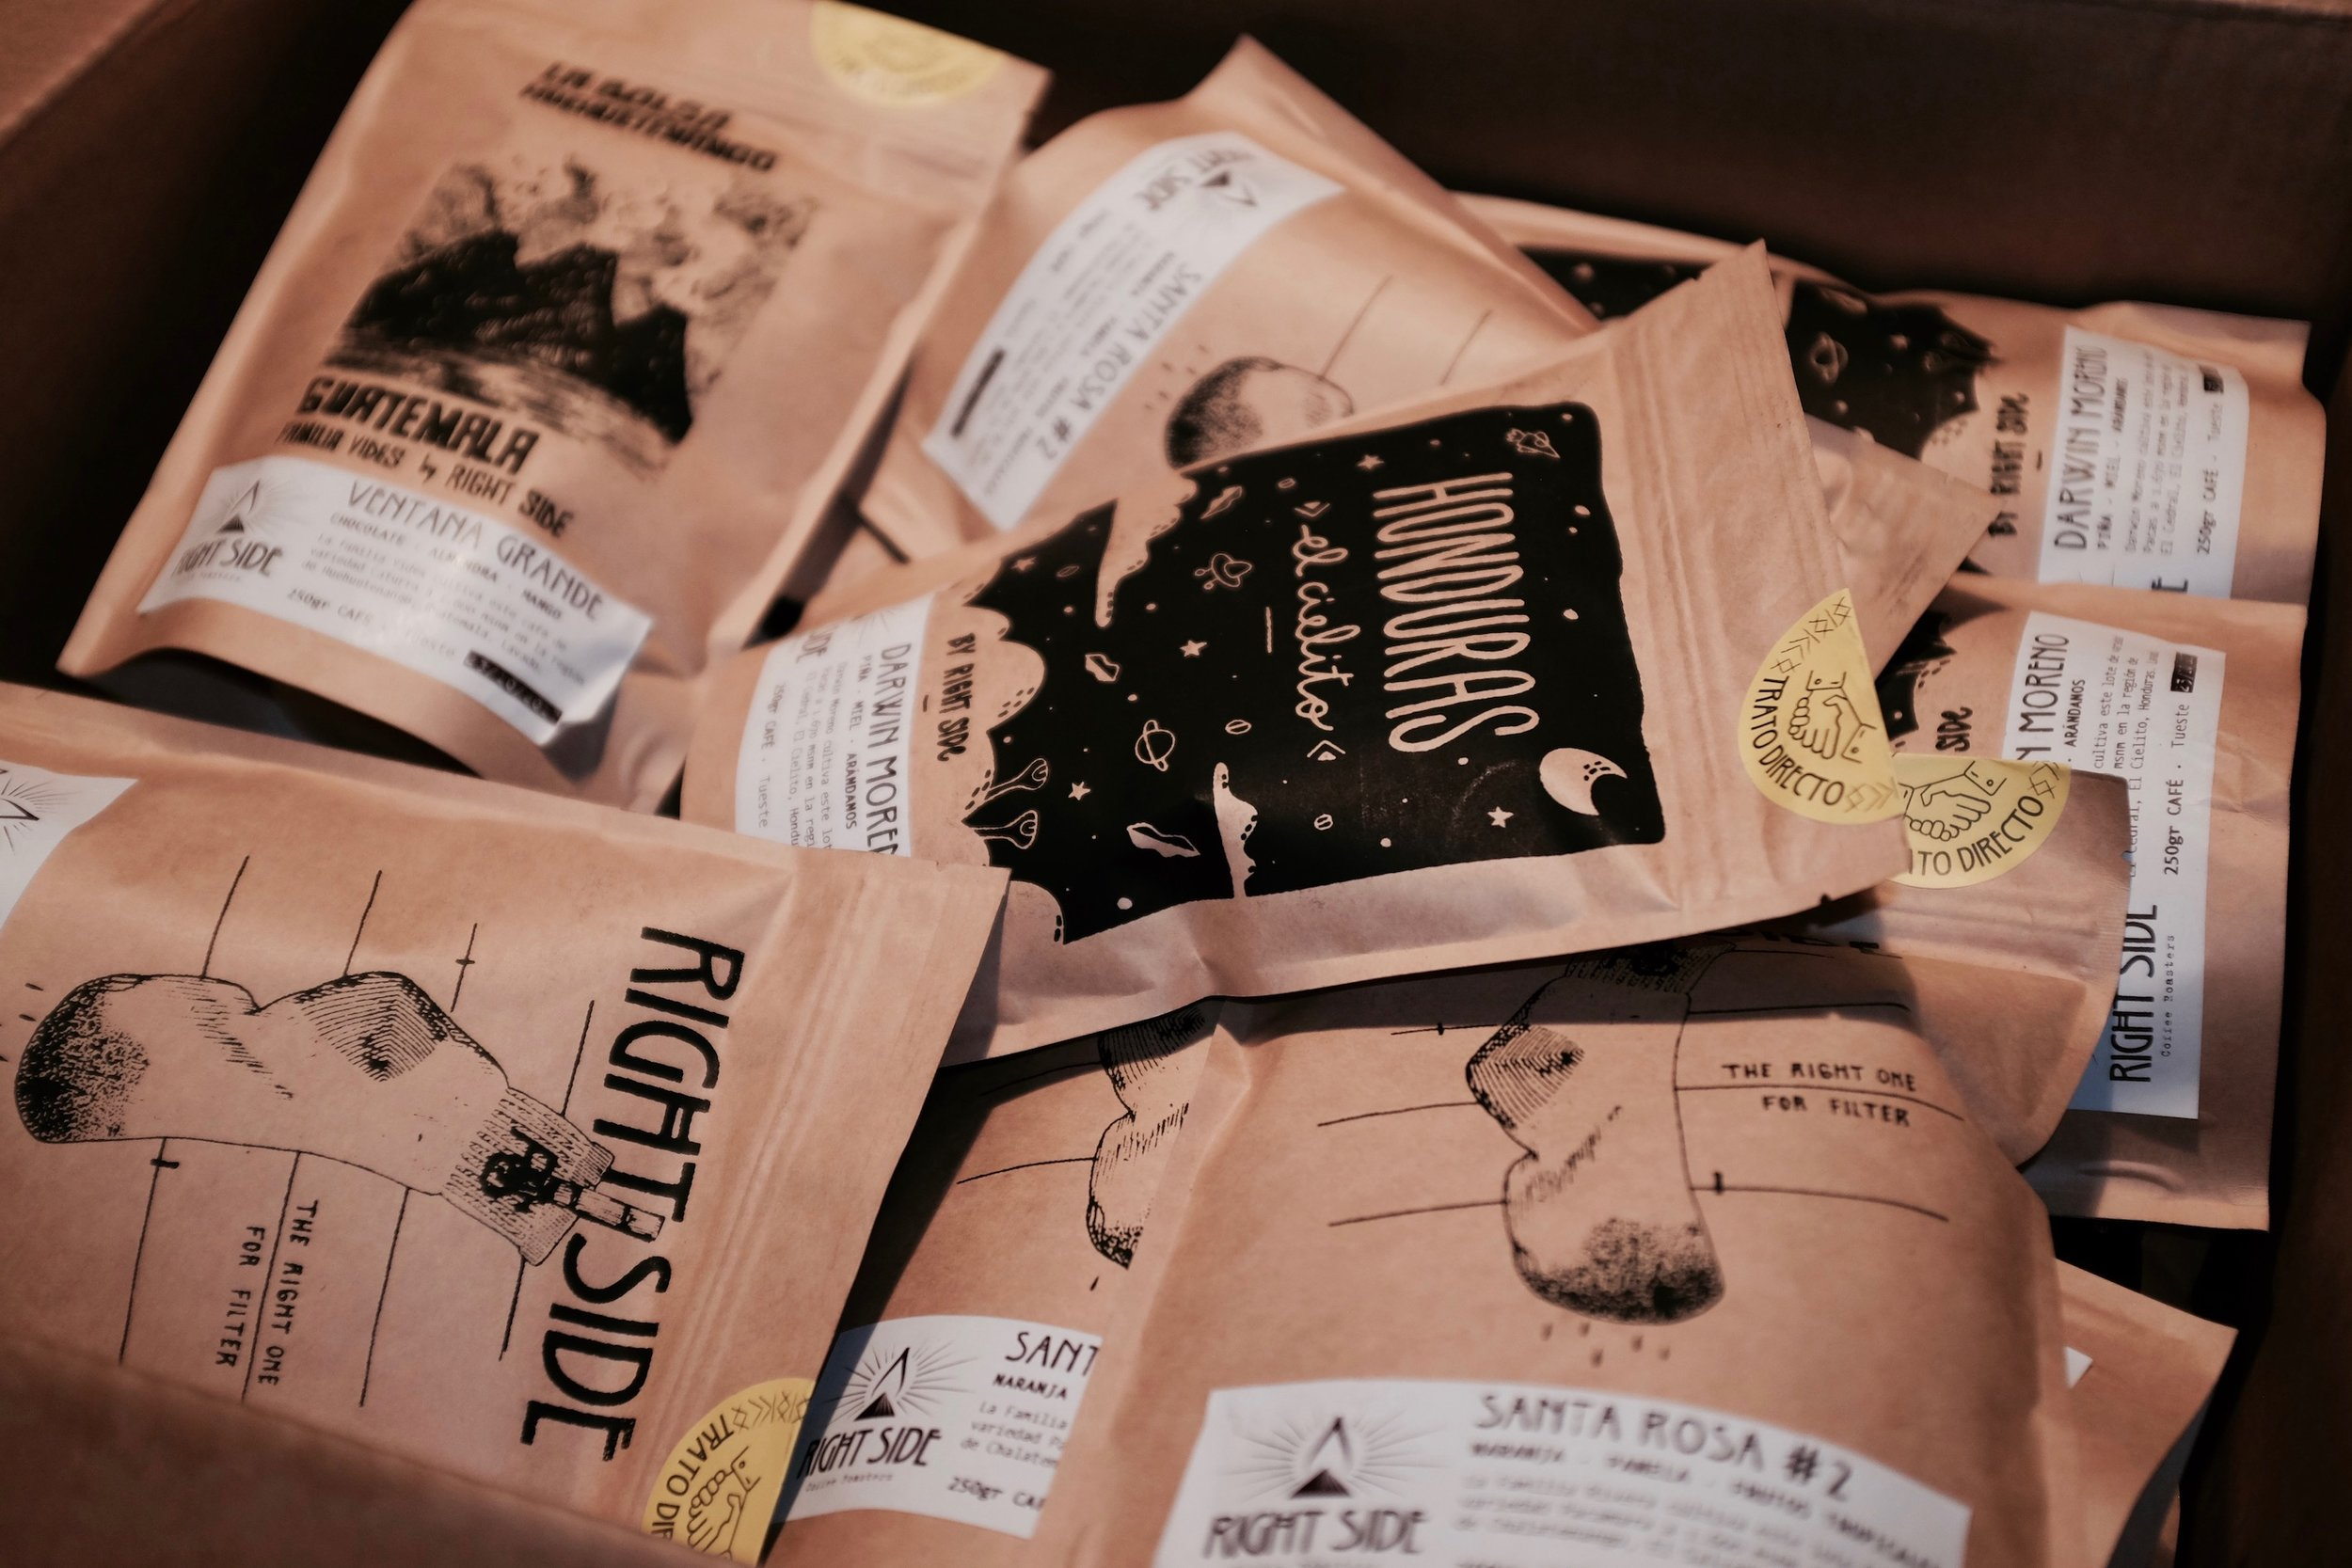 Small batch of Central American coffee by Right Side Coffee Roasters arrived at CAFE SOCIAL Mallorca